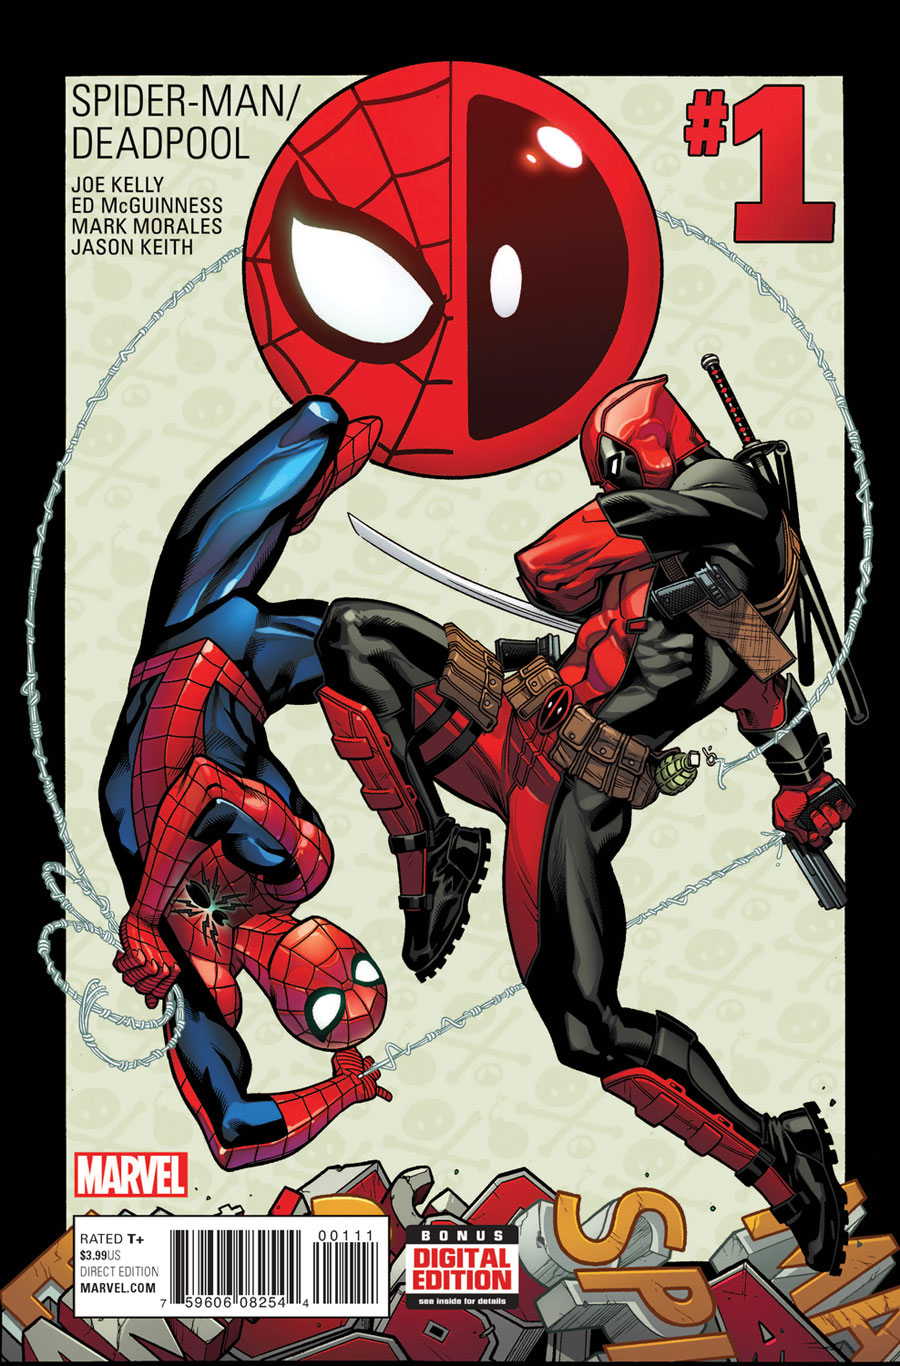 Spider-Man/Deadpool #1 Review: Spider-Pool